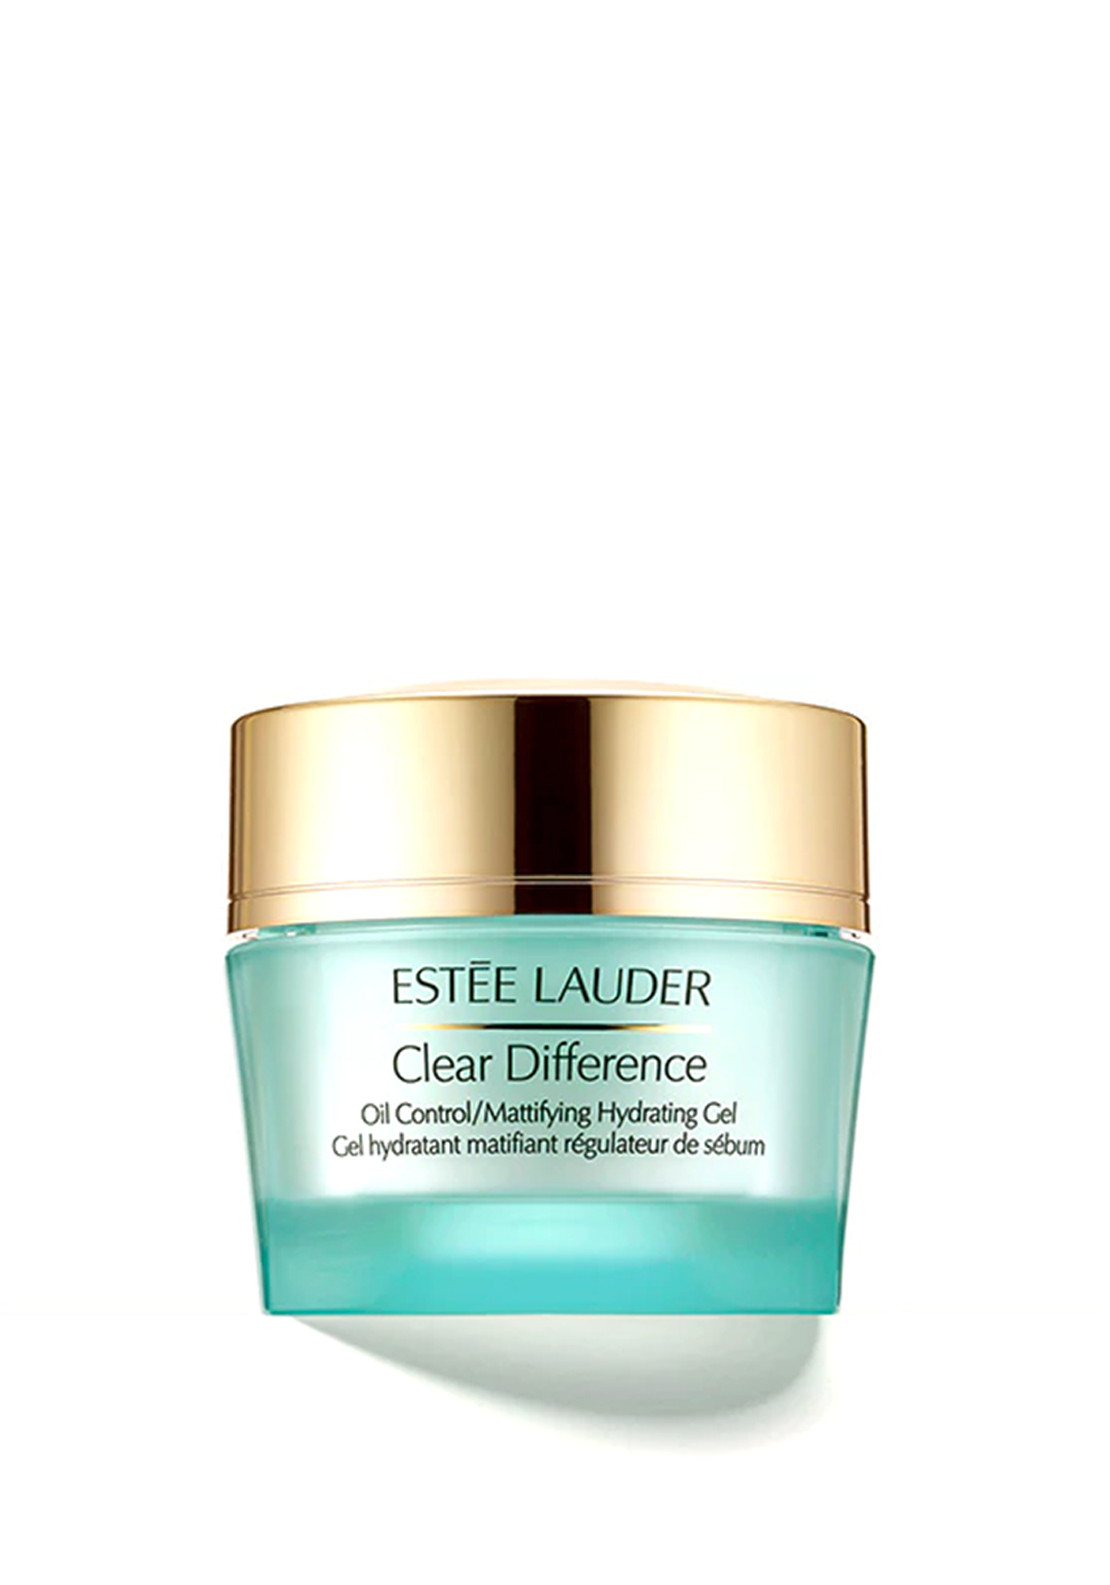 Estee Lauder Clear Difference Oil-control Mattifying Hydrating Gel, 50ml